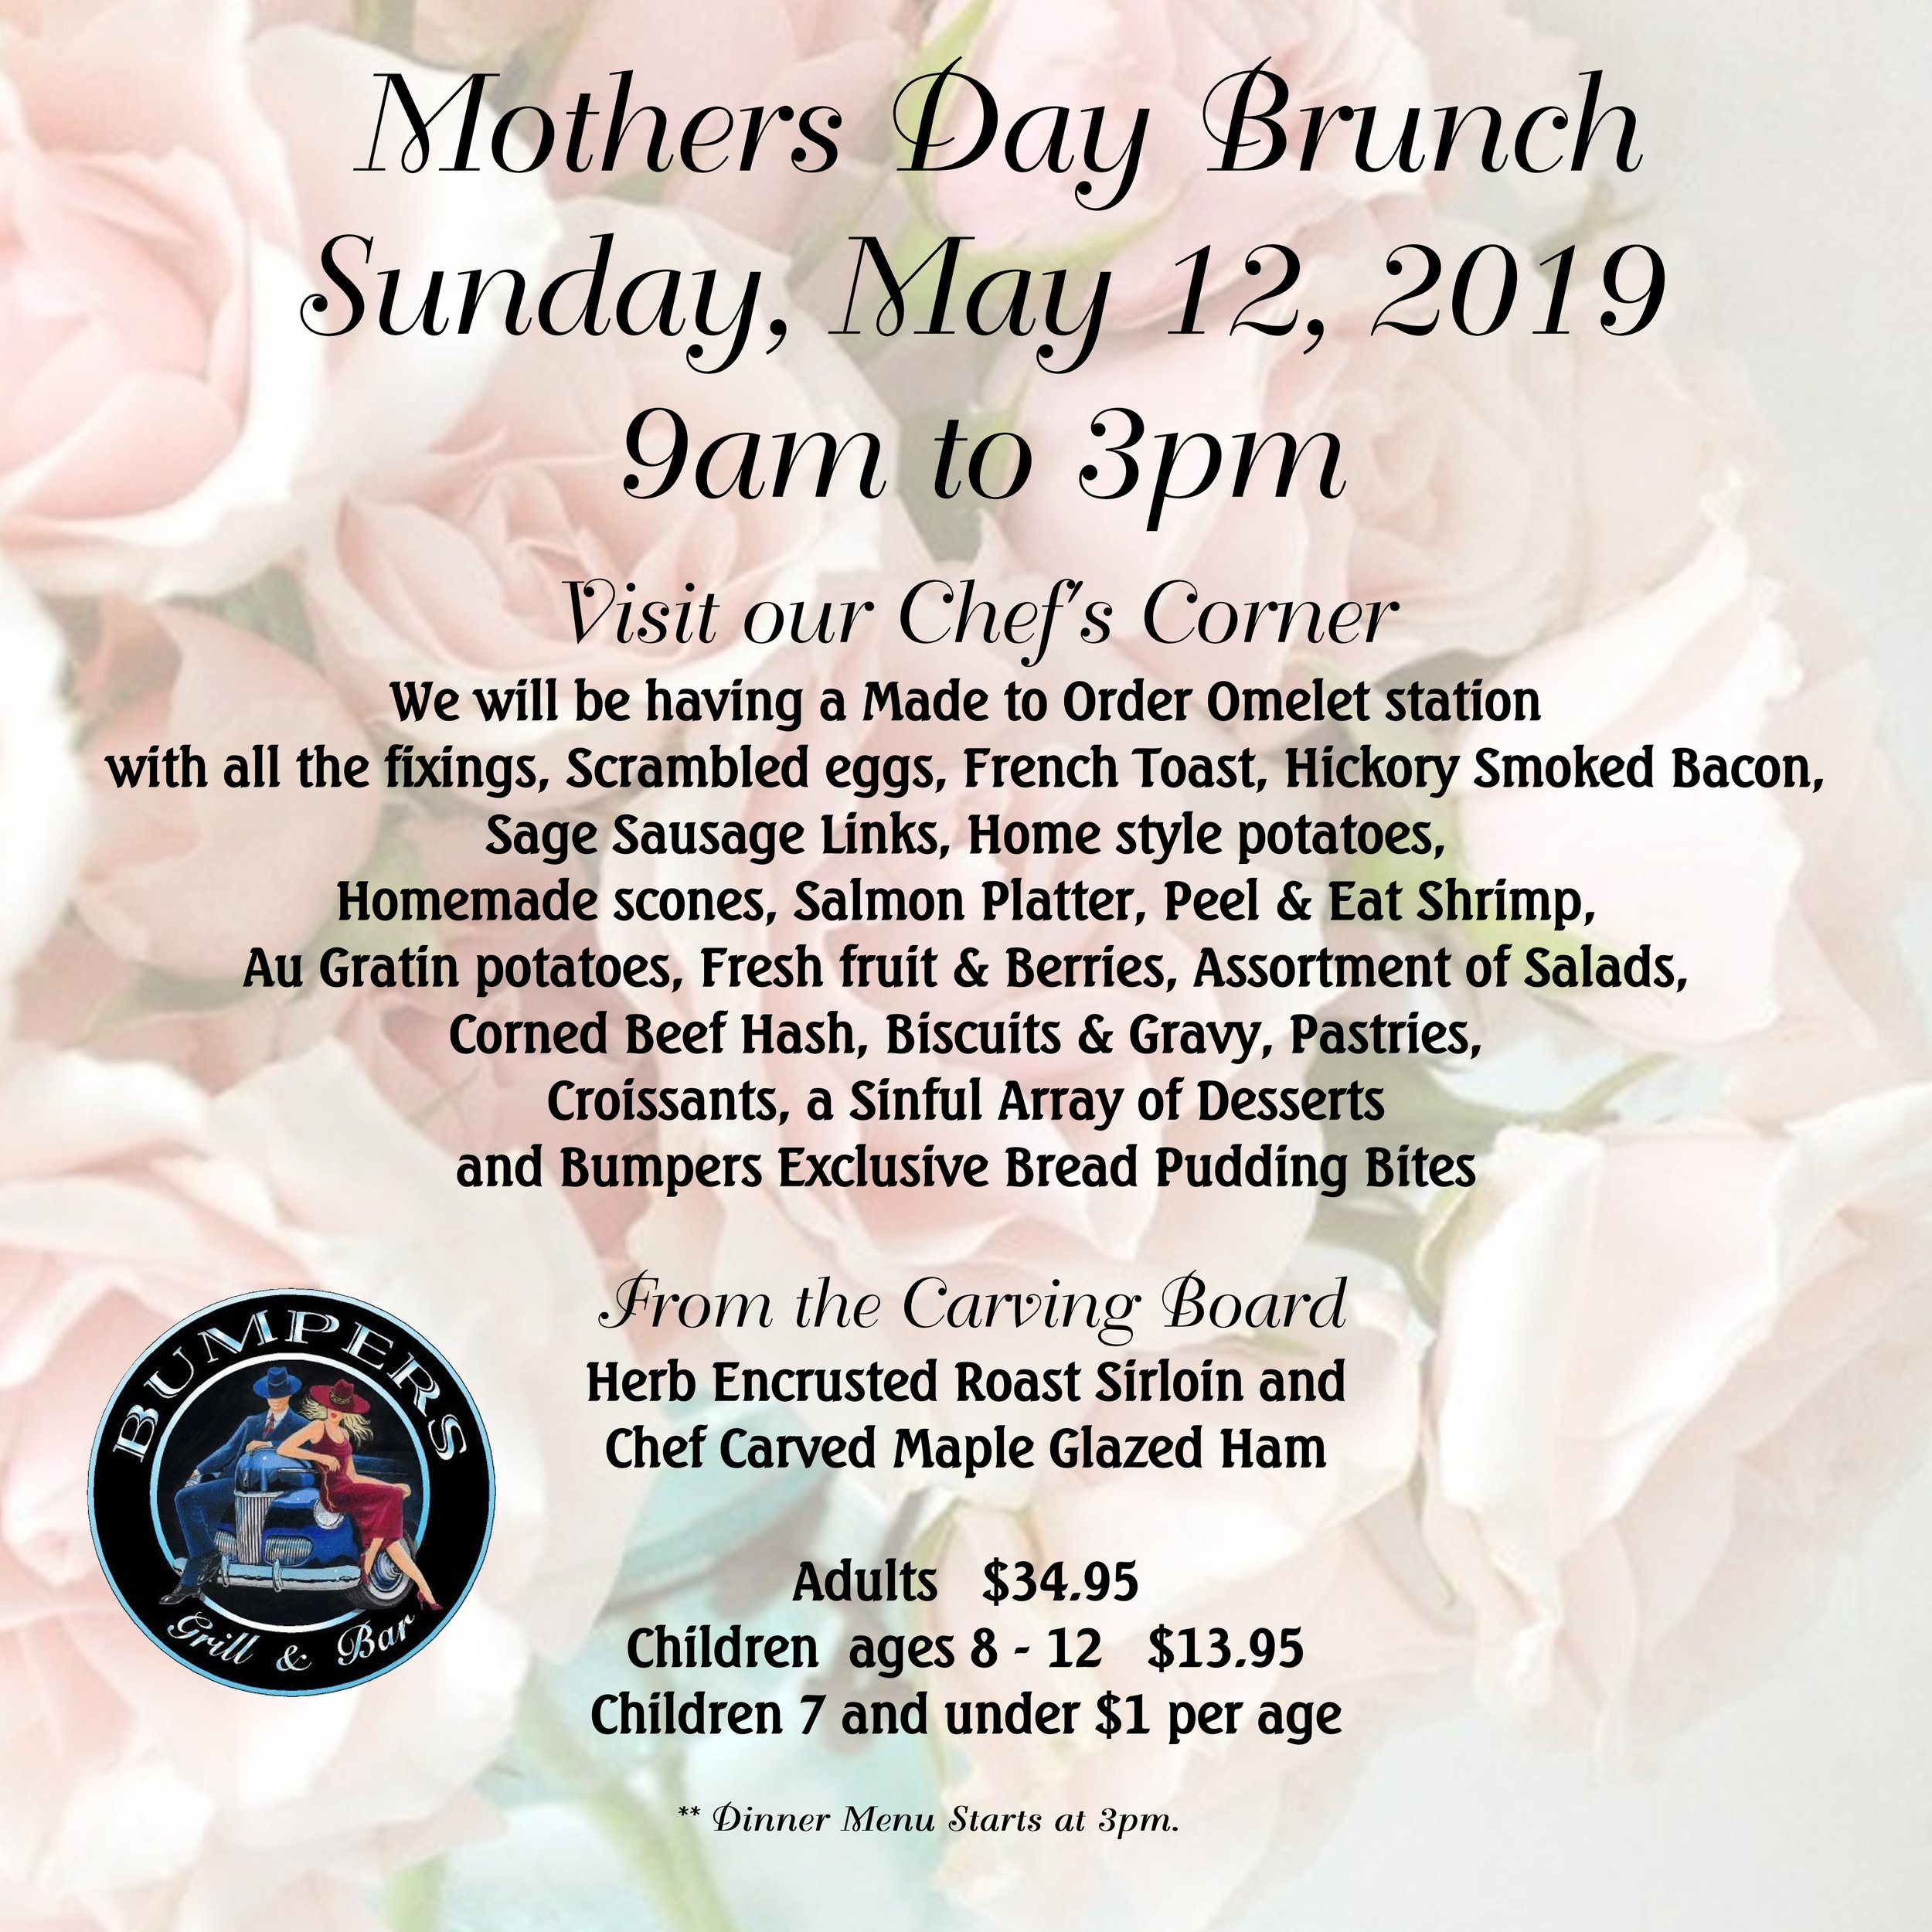 Mothers Day Menu 2019 Square-001.jpg